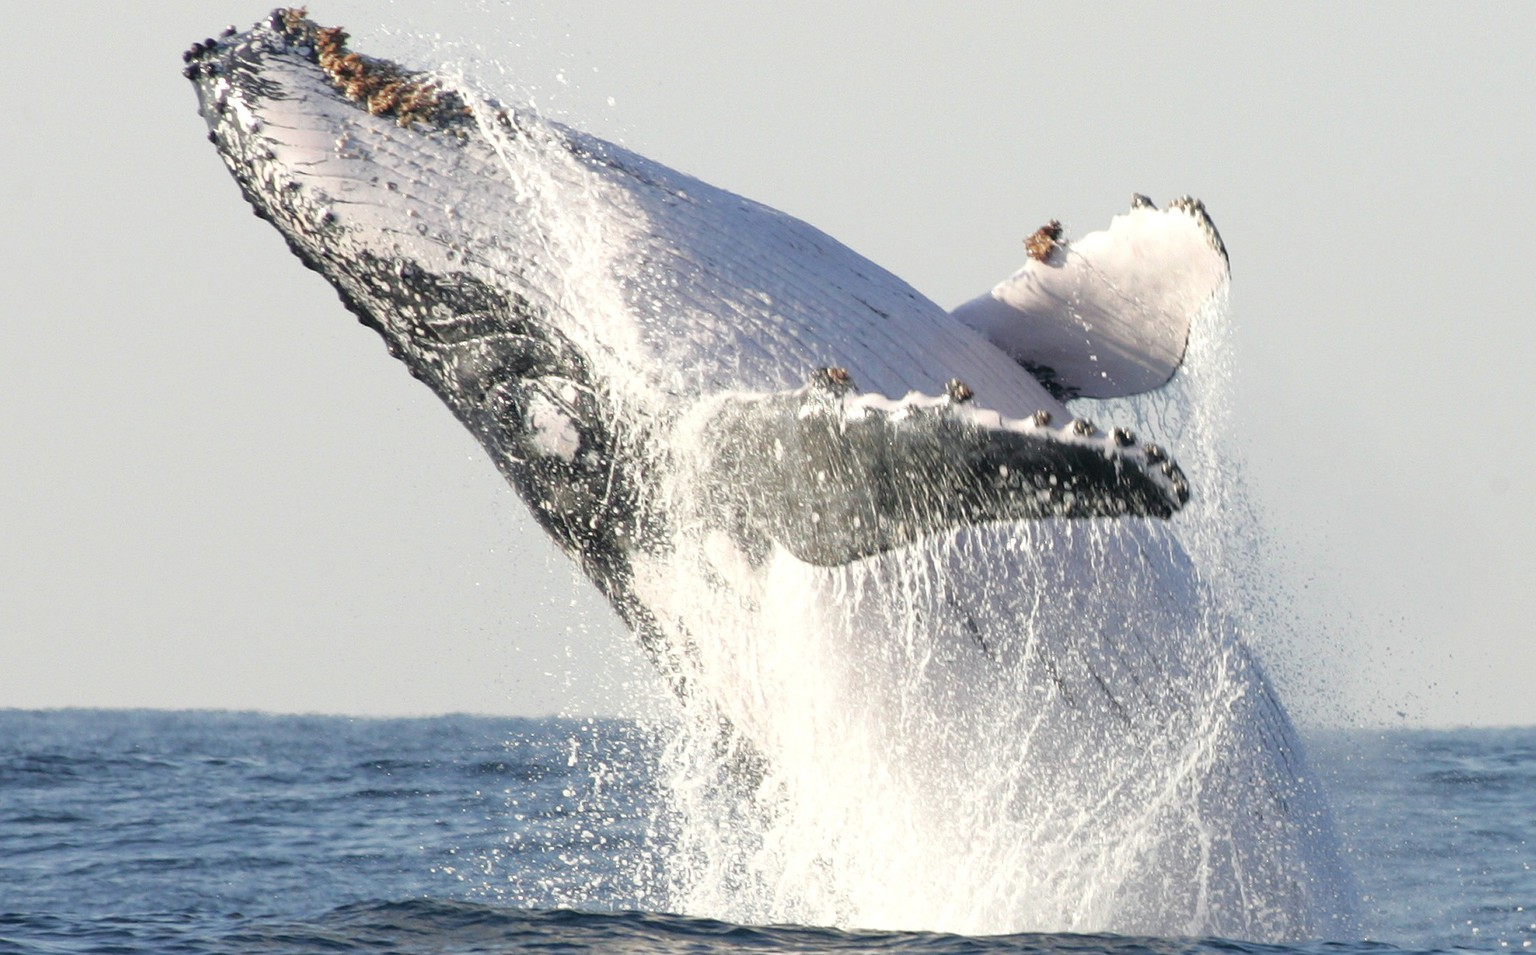 A humpback whale breaches off South Africa's Kwa-Zulu Natal South Coast, in this file photo taken July 9, 2004.  A study unveiled on Monday showed that the extinction or precipitous population declines of large land and sea mammals has deprived ecosystems of a vital source of fertilization in their dung, urine and, after death, decomposing bodies.  REUTERS/Mike Hutchings/Files